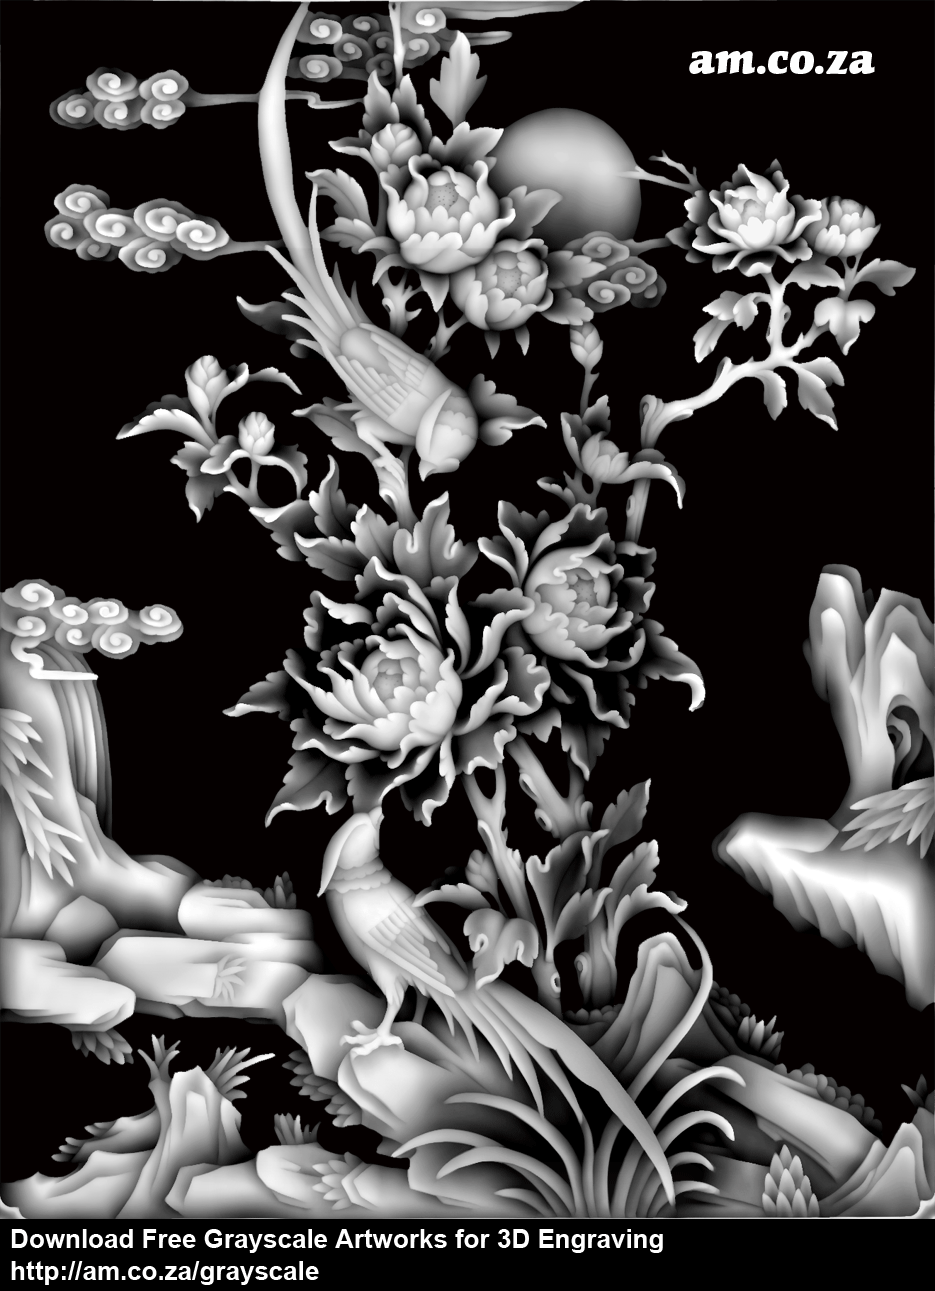 Grayscale 3d relief picture and images - Tree Peony With Birdsize 935 1218